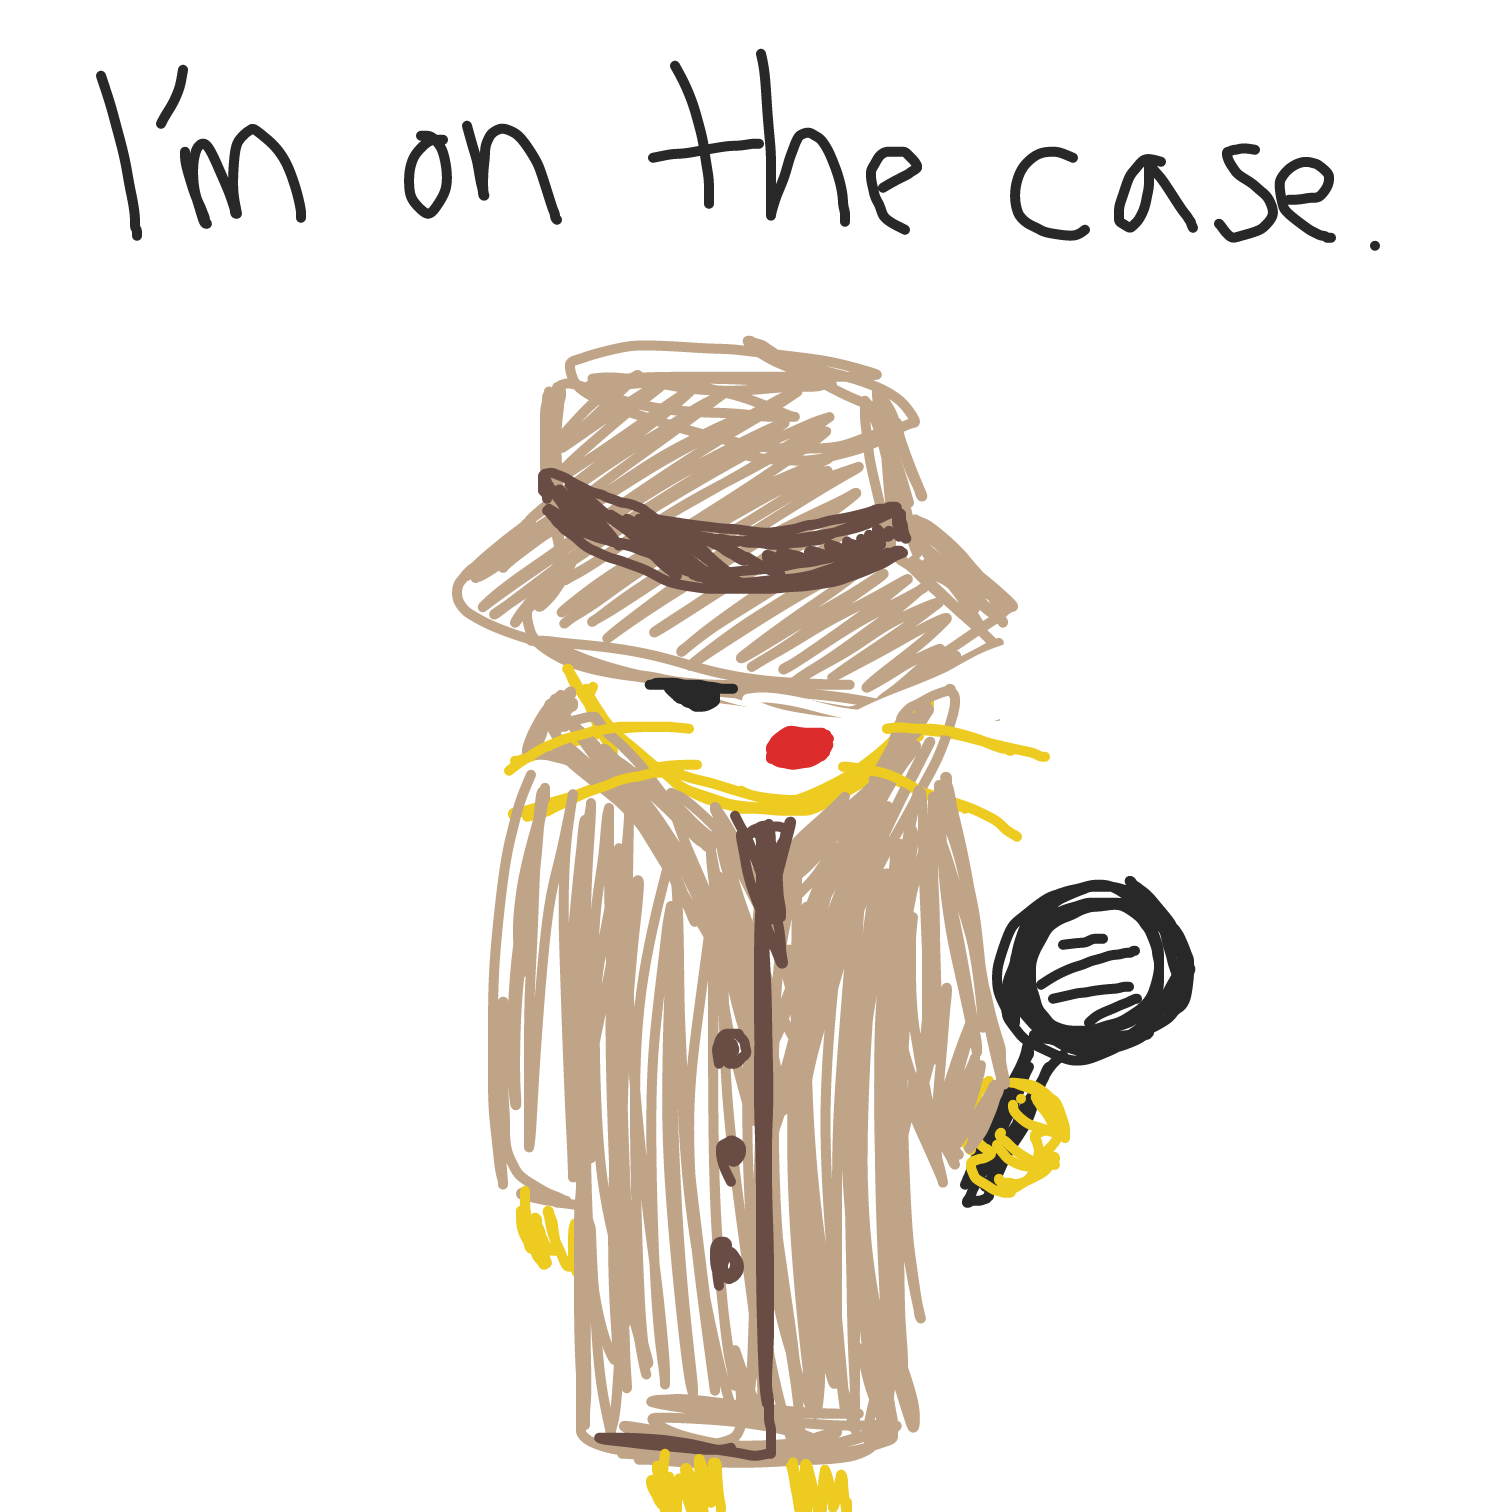 Liked webcomic Detective Cat McSleutherson